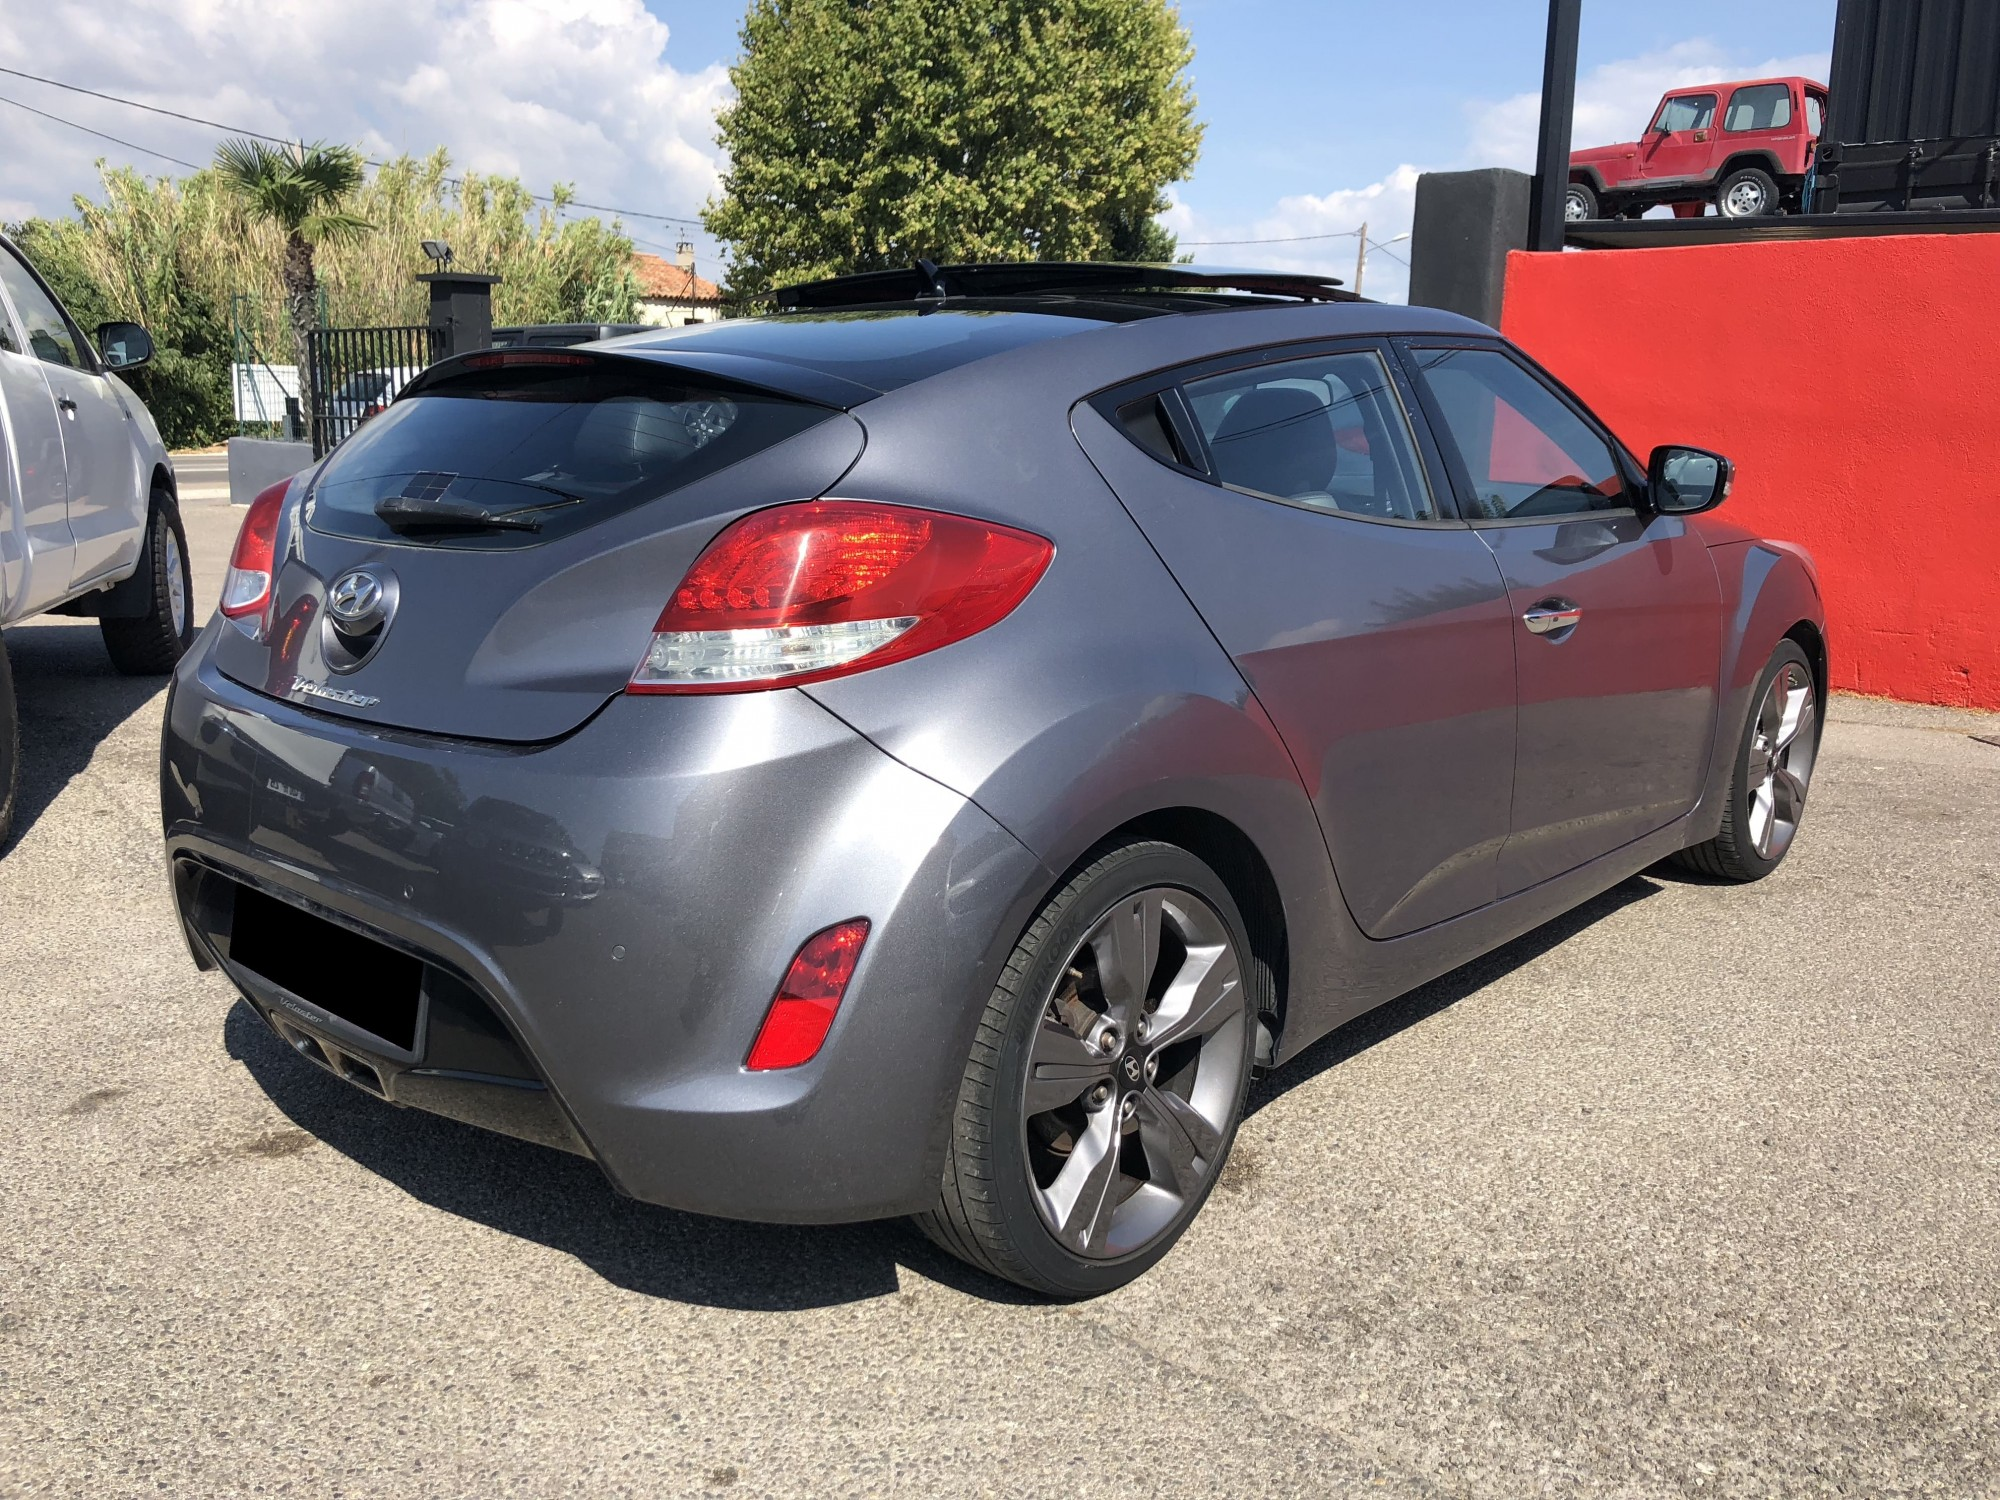 coupe hyundai veloster 1 6 gdi 140 ch pack premium 2012 gris fonc 4x4 occasion pro fun 4x4. Black Bedroom Furniture Sets. Home Design Ideas